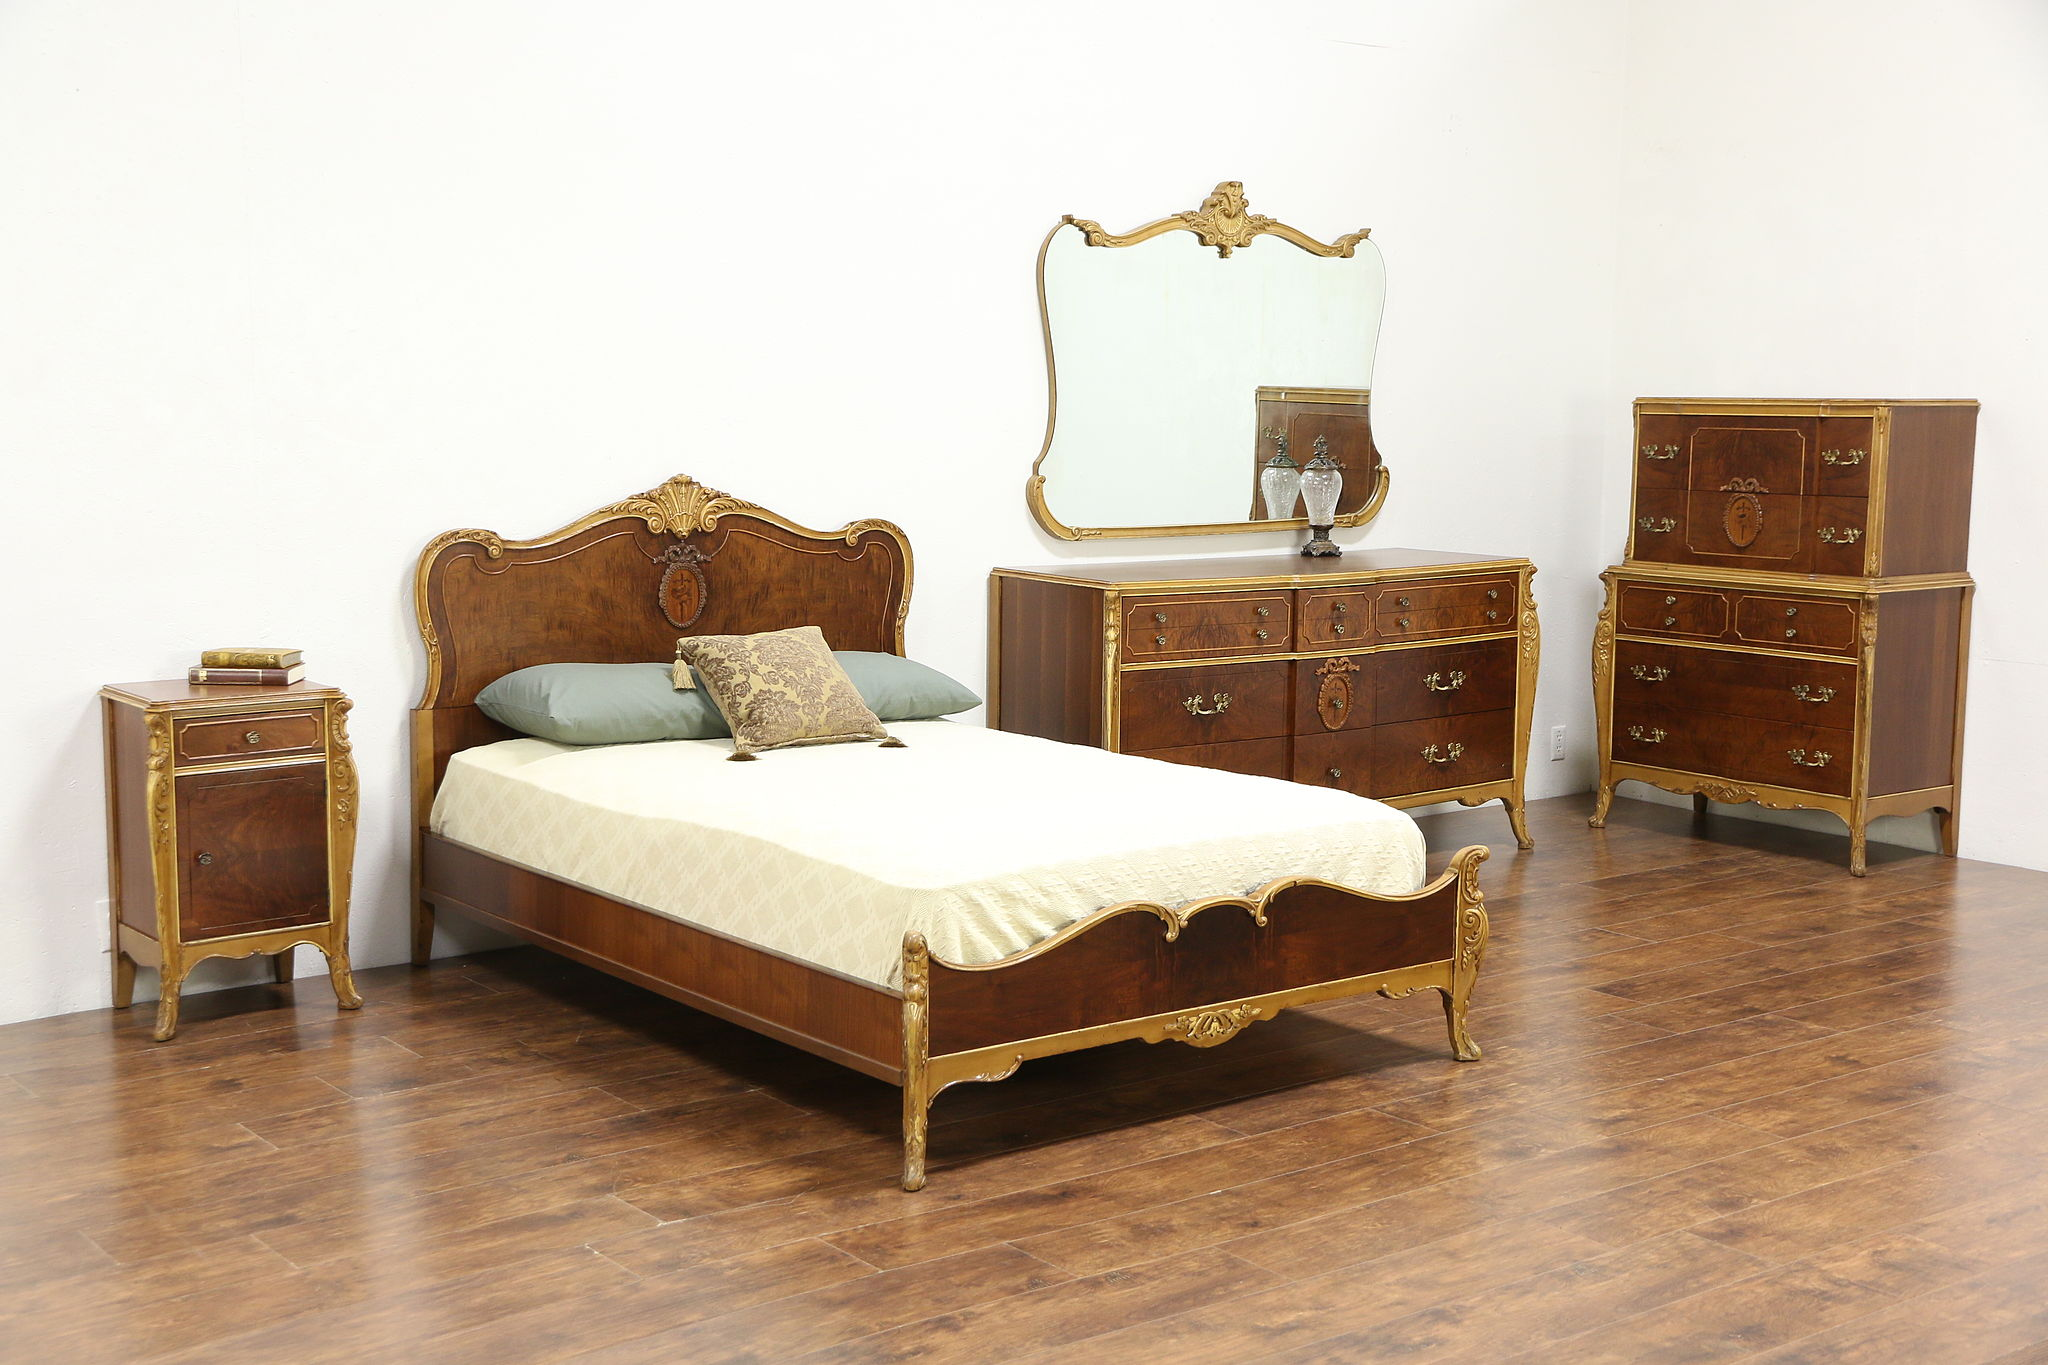 French style 5 pc 1930 39 s vintage marquetry bedroom set - French style bedroom furniture sets ...